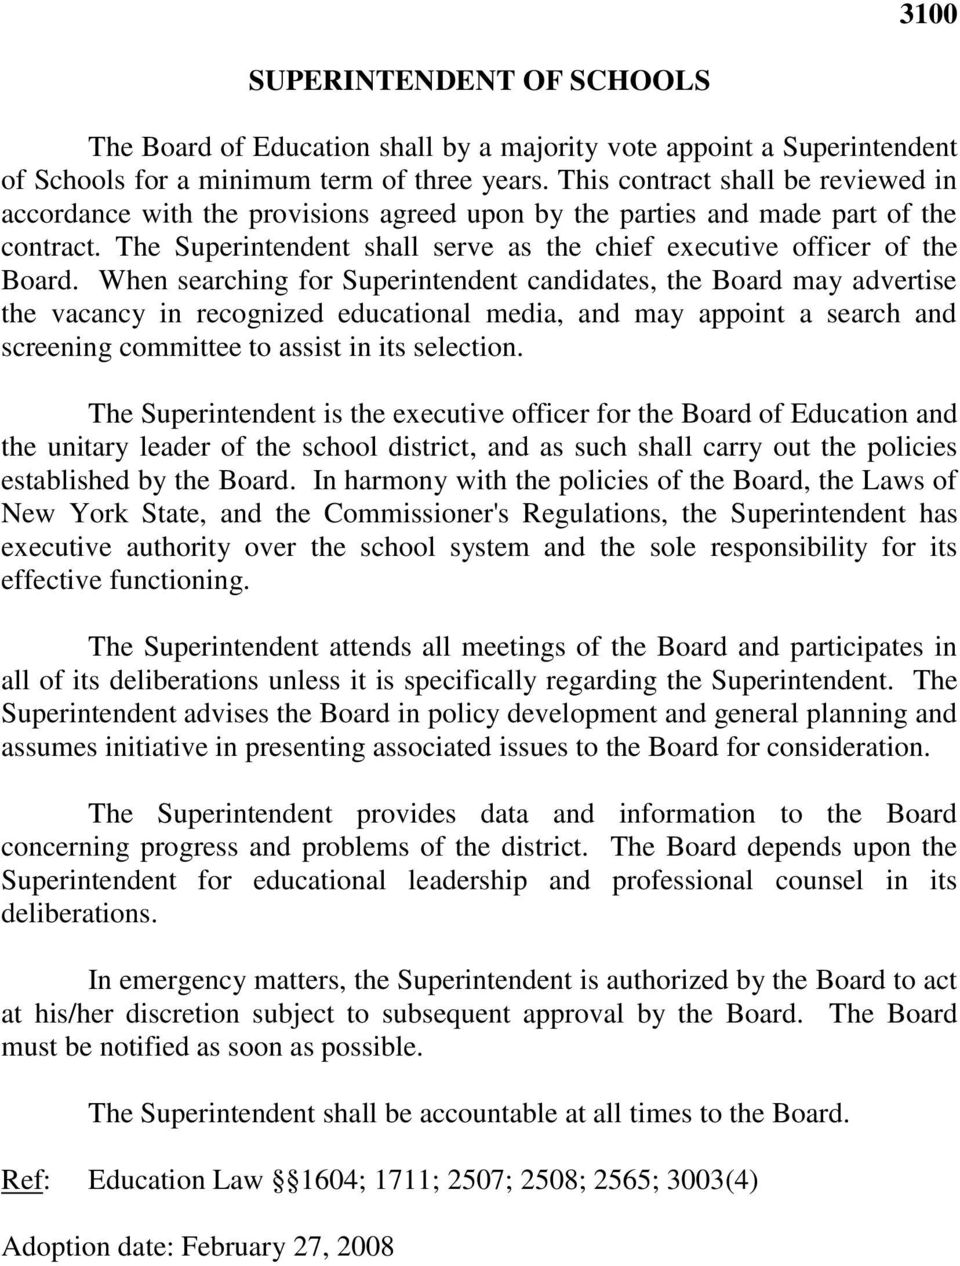 When searching for Superintendent candidates, the Board may advertise the vacancy in recognized educational media, and may appoint a search and screening committee to assist in its selection.